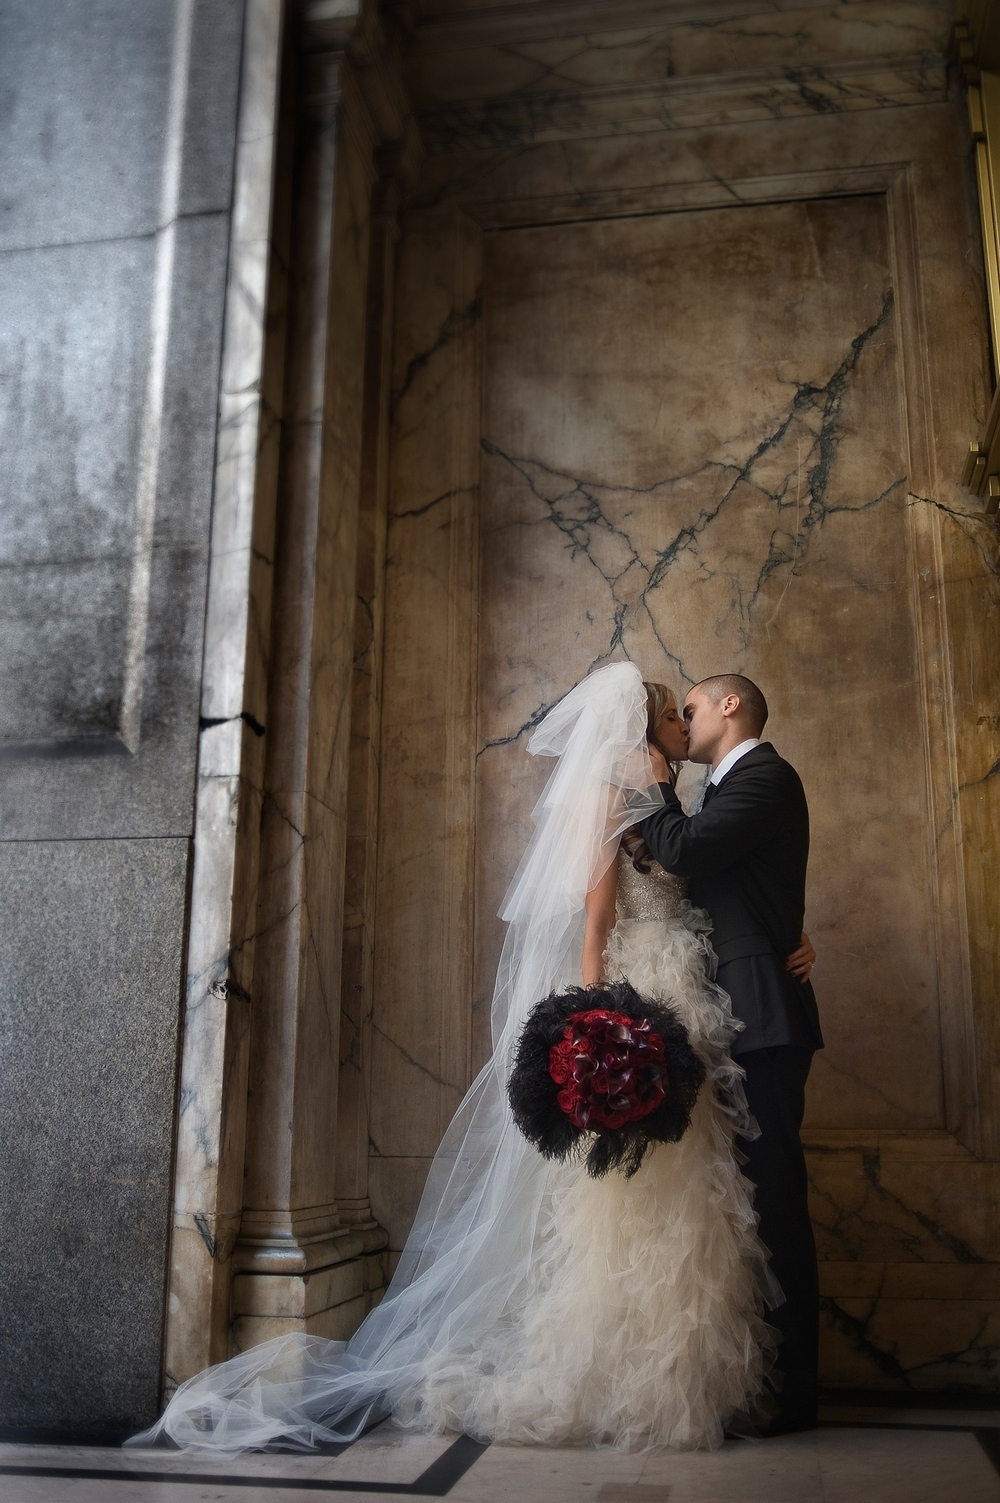 Bride-groom-kiss-outside-of-regal-downtown-la-building-bride-holds-statement-bridal-bouquet-red-roses-black-feathers.full